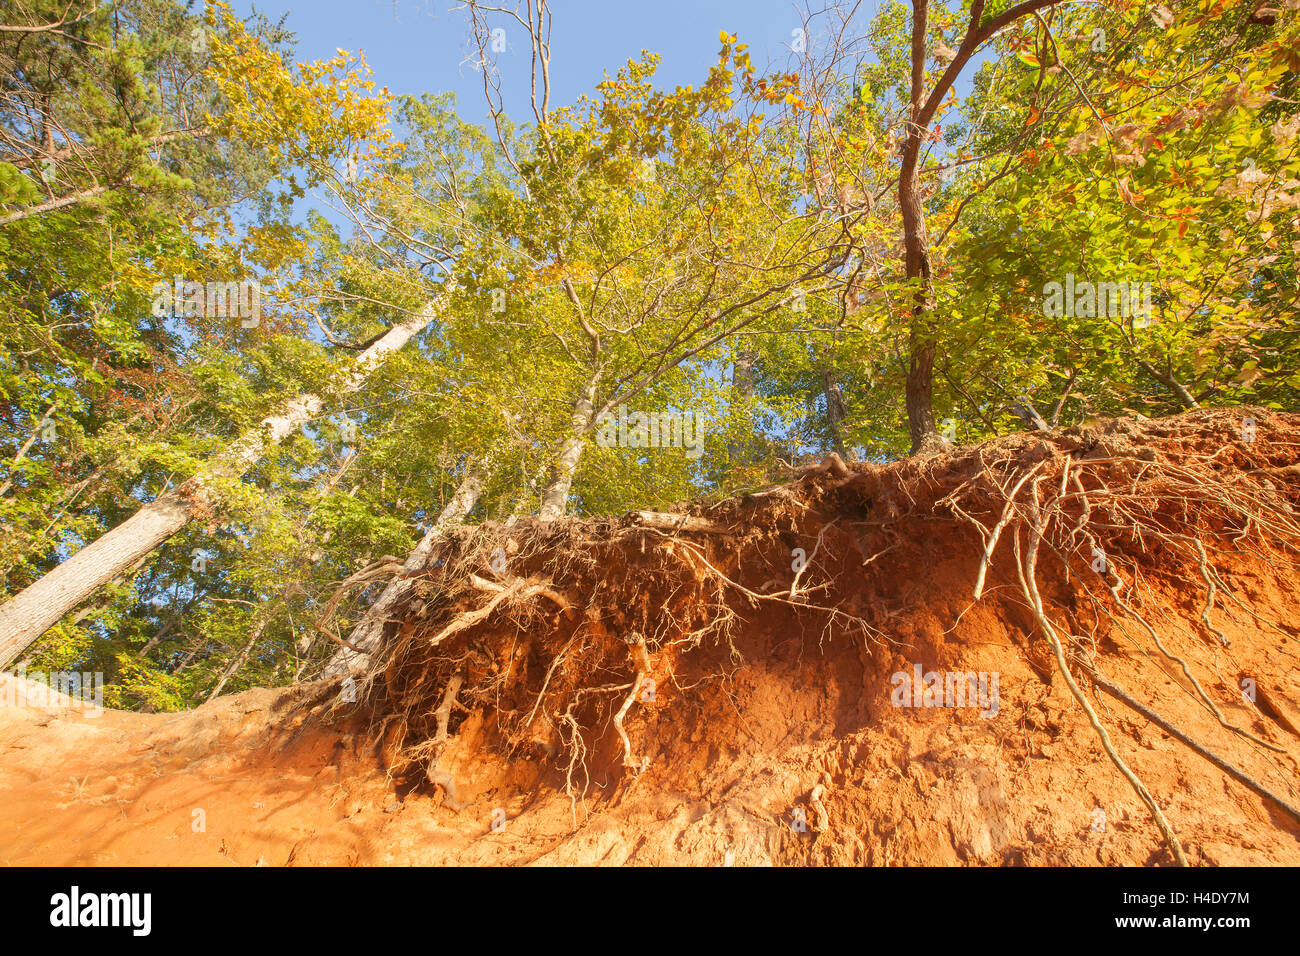 A forest scene with exposed roots in Troutman, North Carolina. - Stock Image